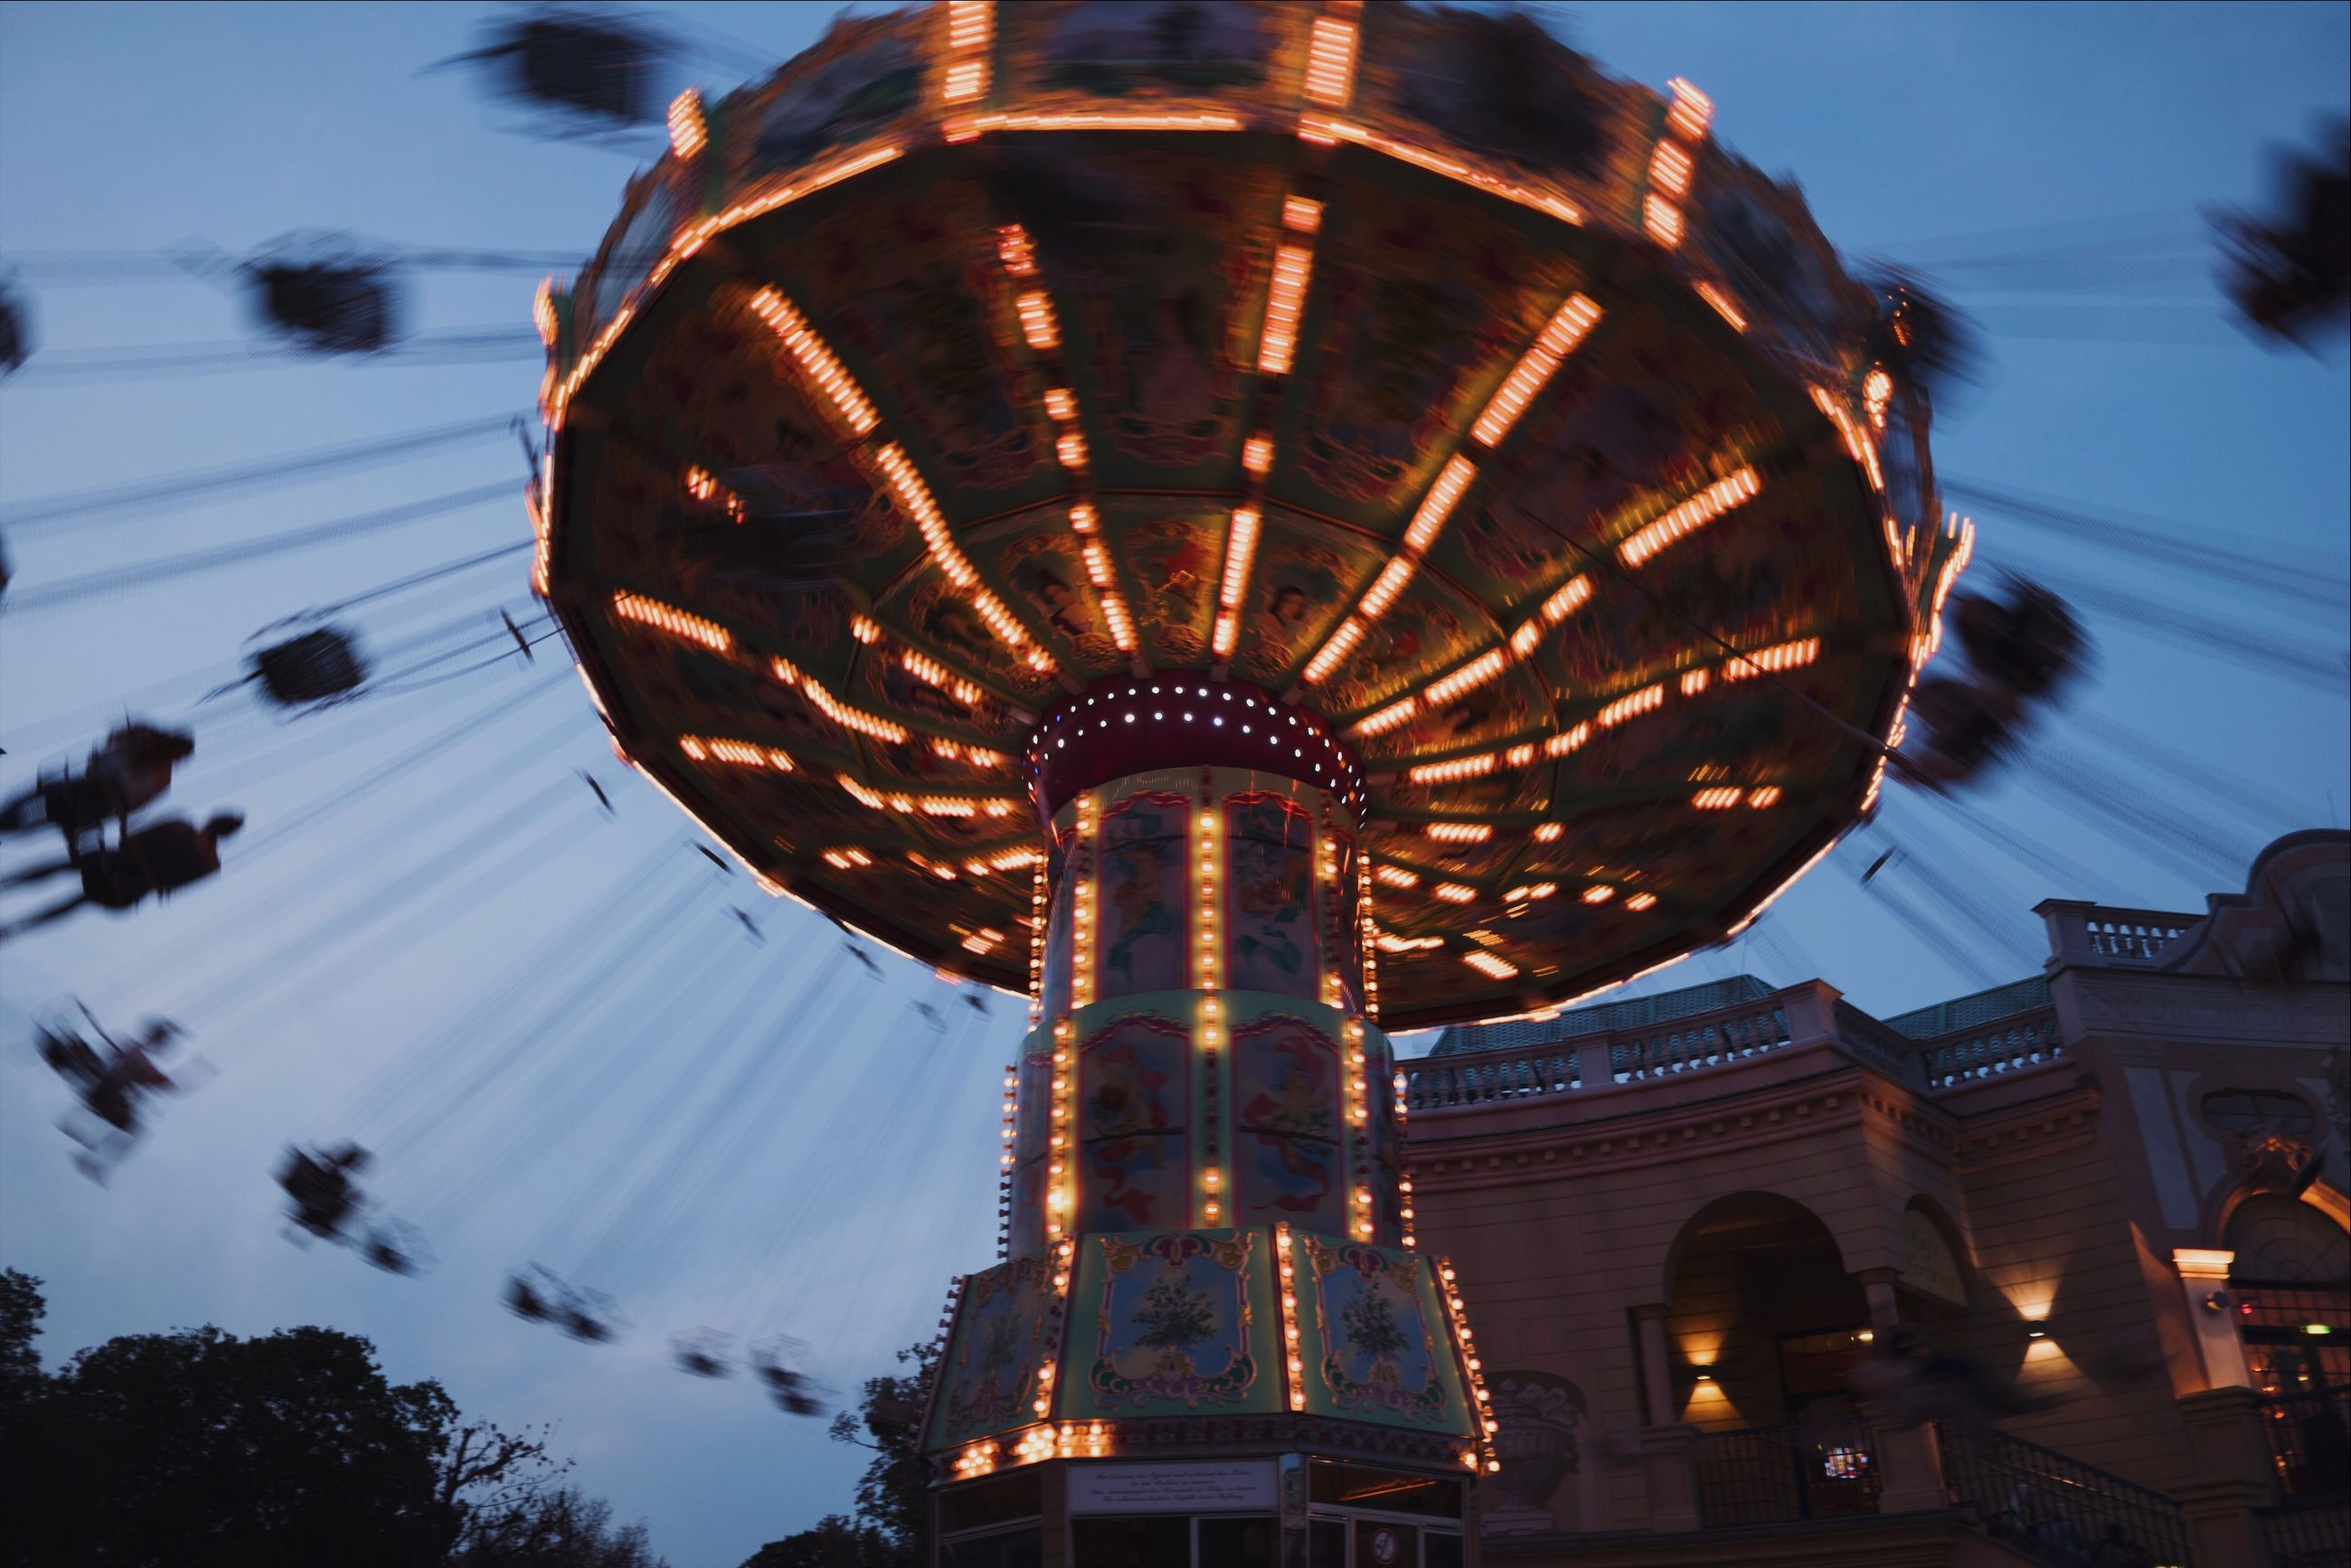 amusement park, amusement park ride, illuminated, sky, arts culture and entertainment, low angle view, chain swing ride, spinning, nature, motion, architecture, dusk, built structure, blurred motion, speed, outdoors, no people, fun, tree